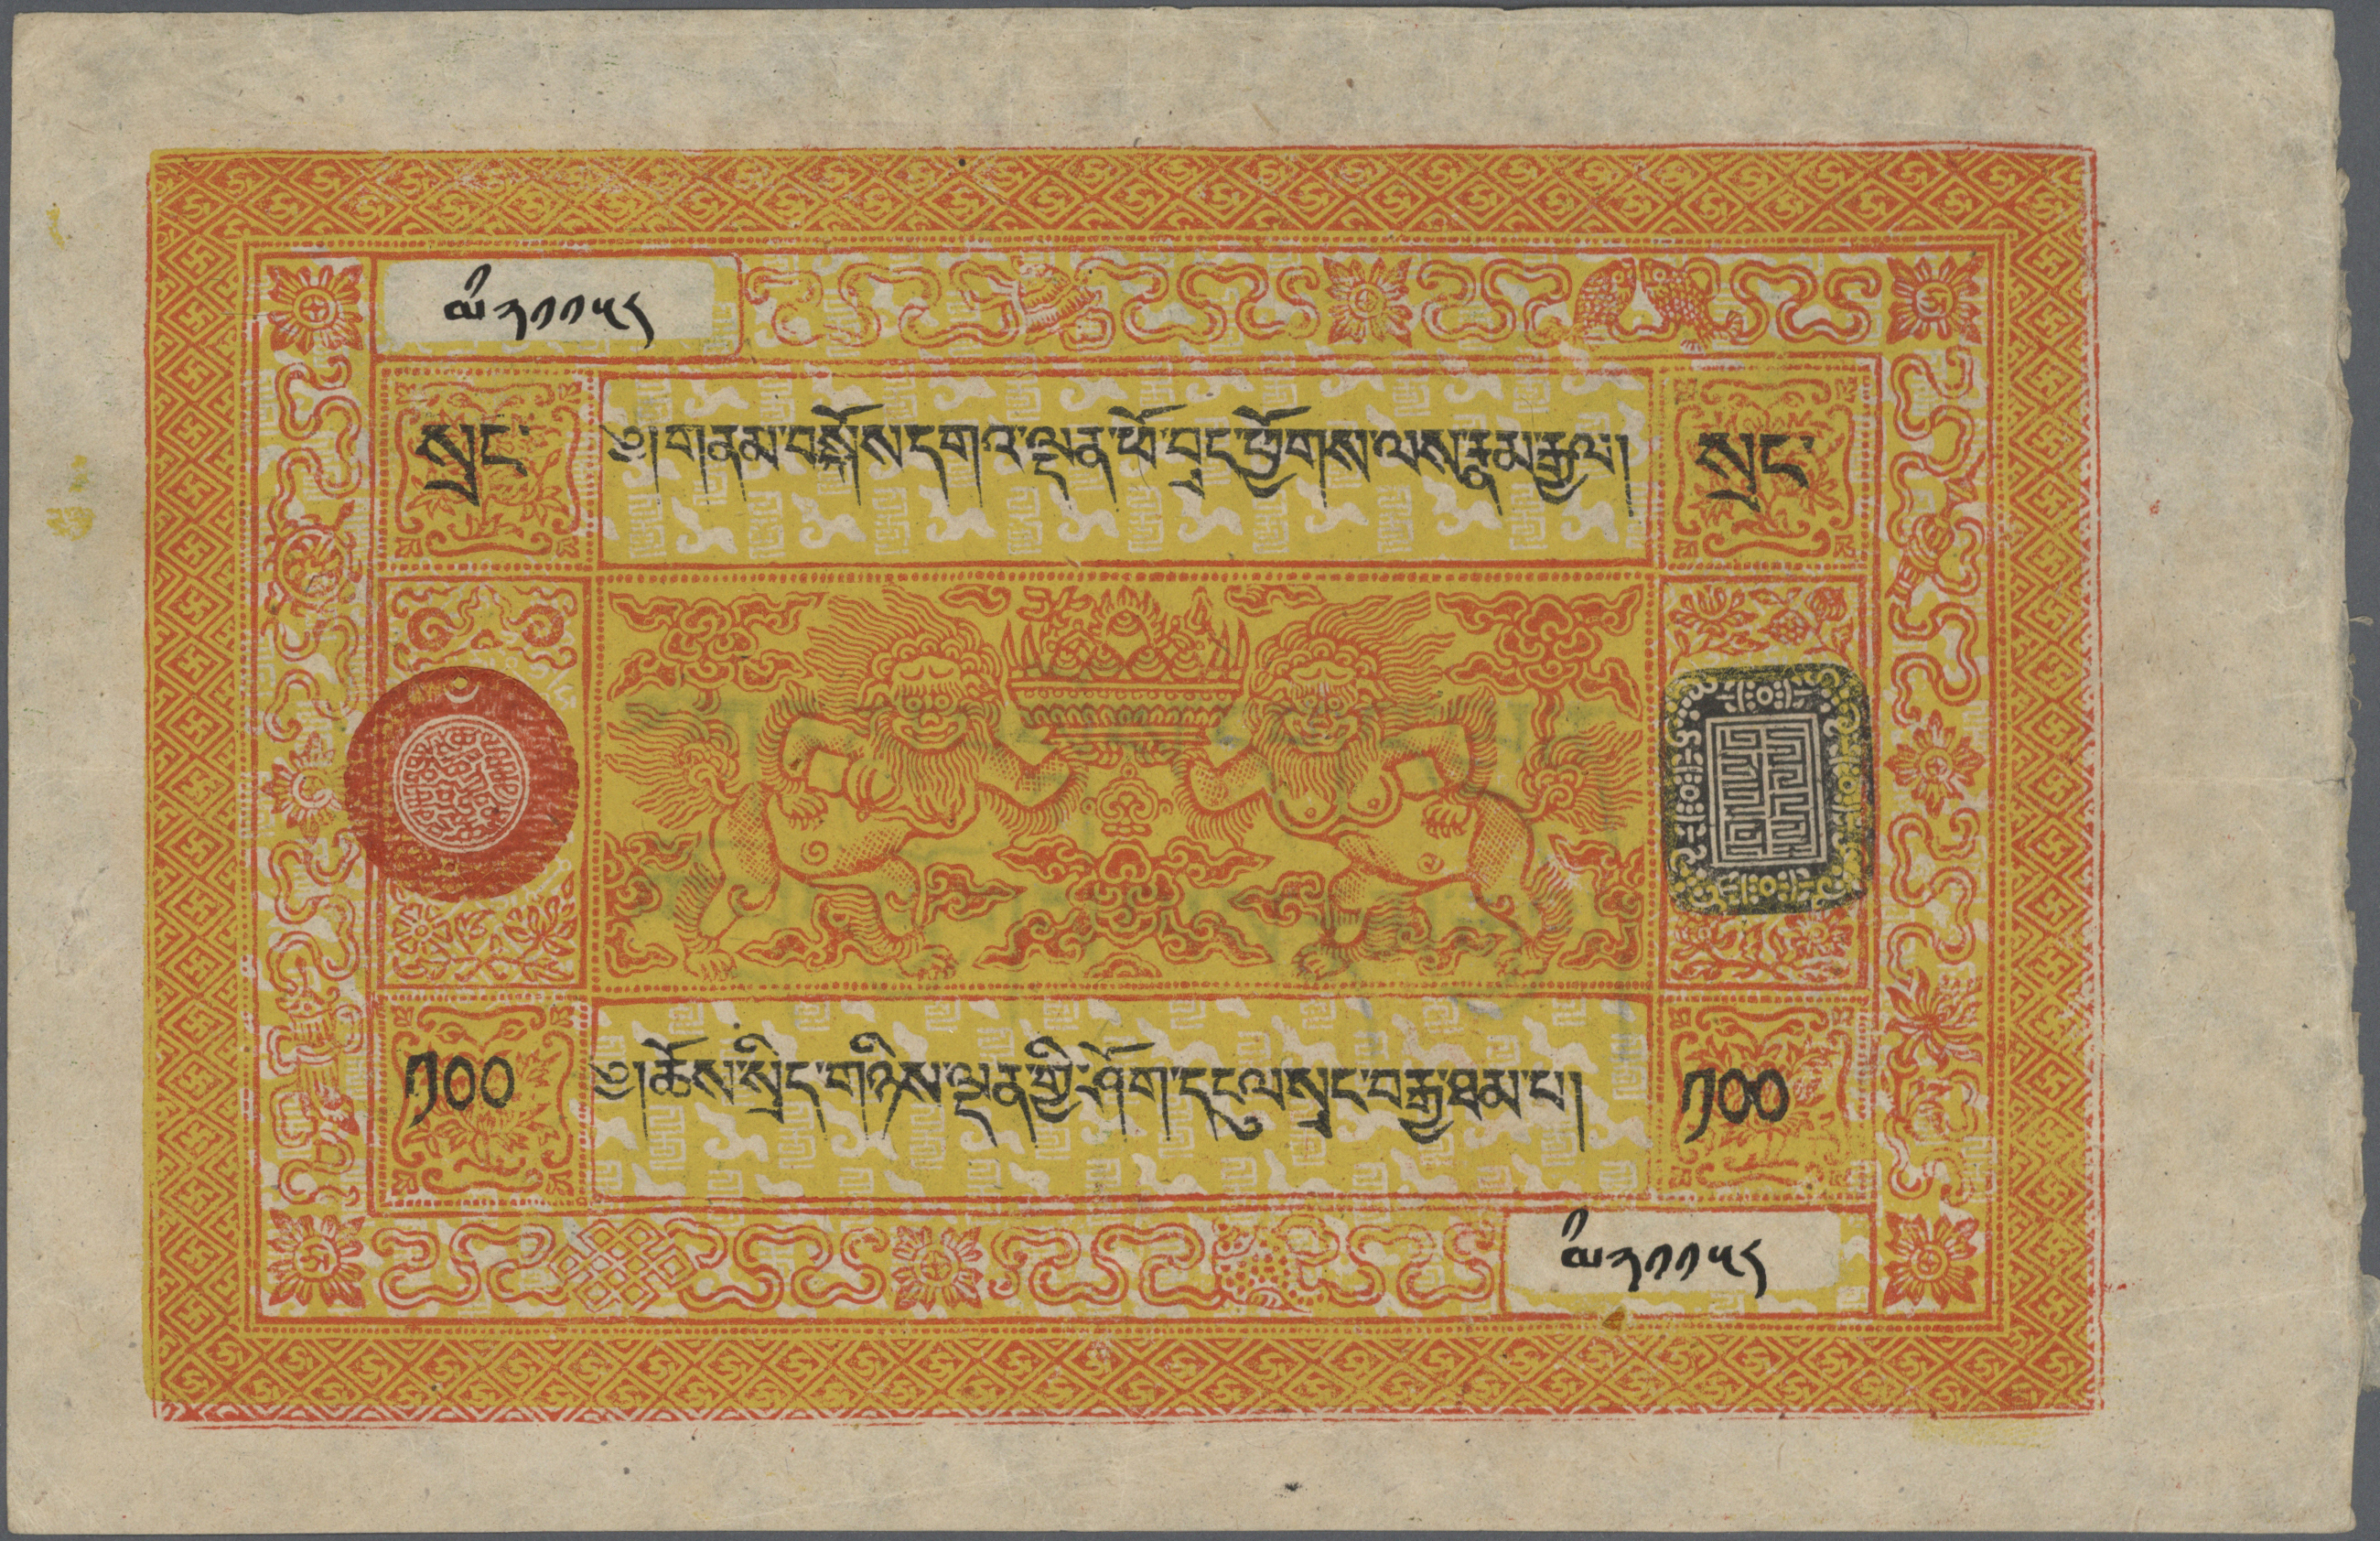 Lot 2018 - Tibet | Banknoten  -  Auktionshaus Christoph Gärtner GmbH & Co. KG Banknotes & Coins Auction #39 Day 2